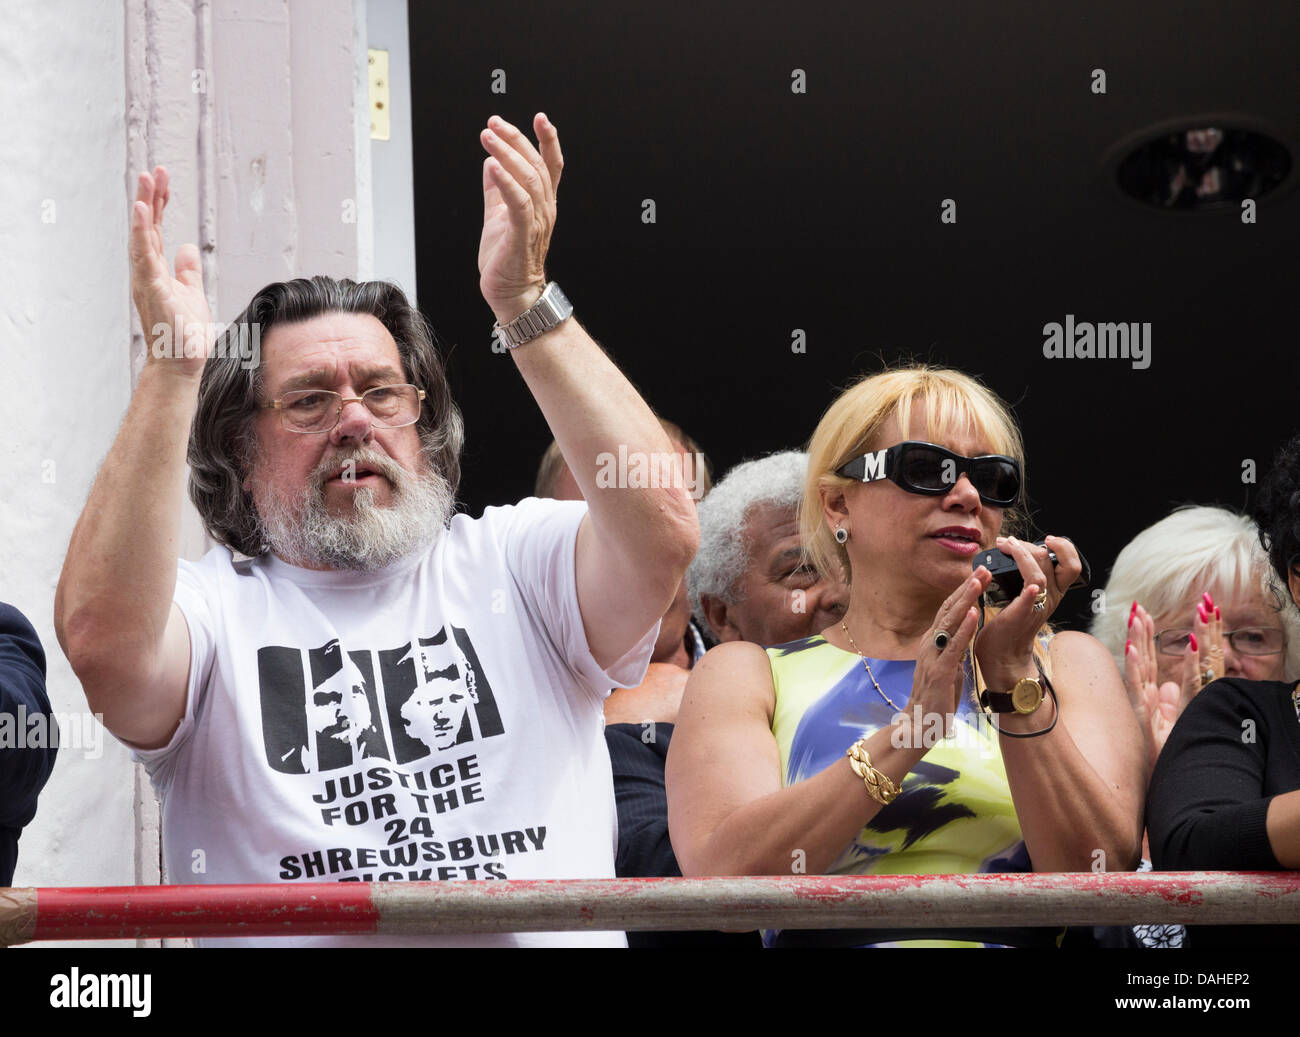 Durham, UK. 13th July 2013. Actor Ricky Tomlinson campaigning for justice for the Shrewsbury 24 at The Durham Miners - Stock Image